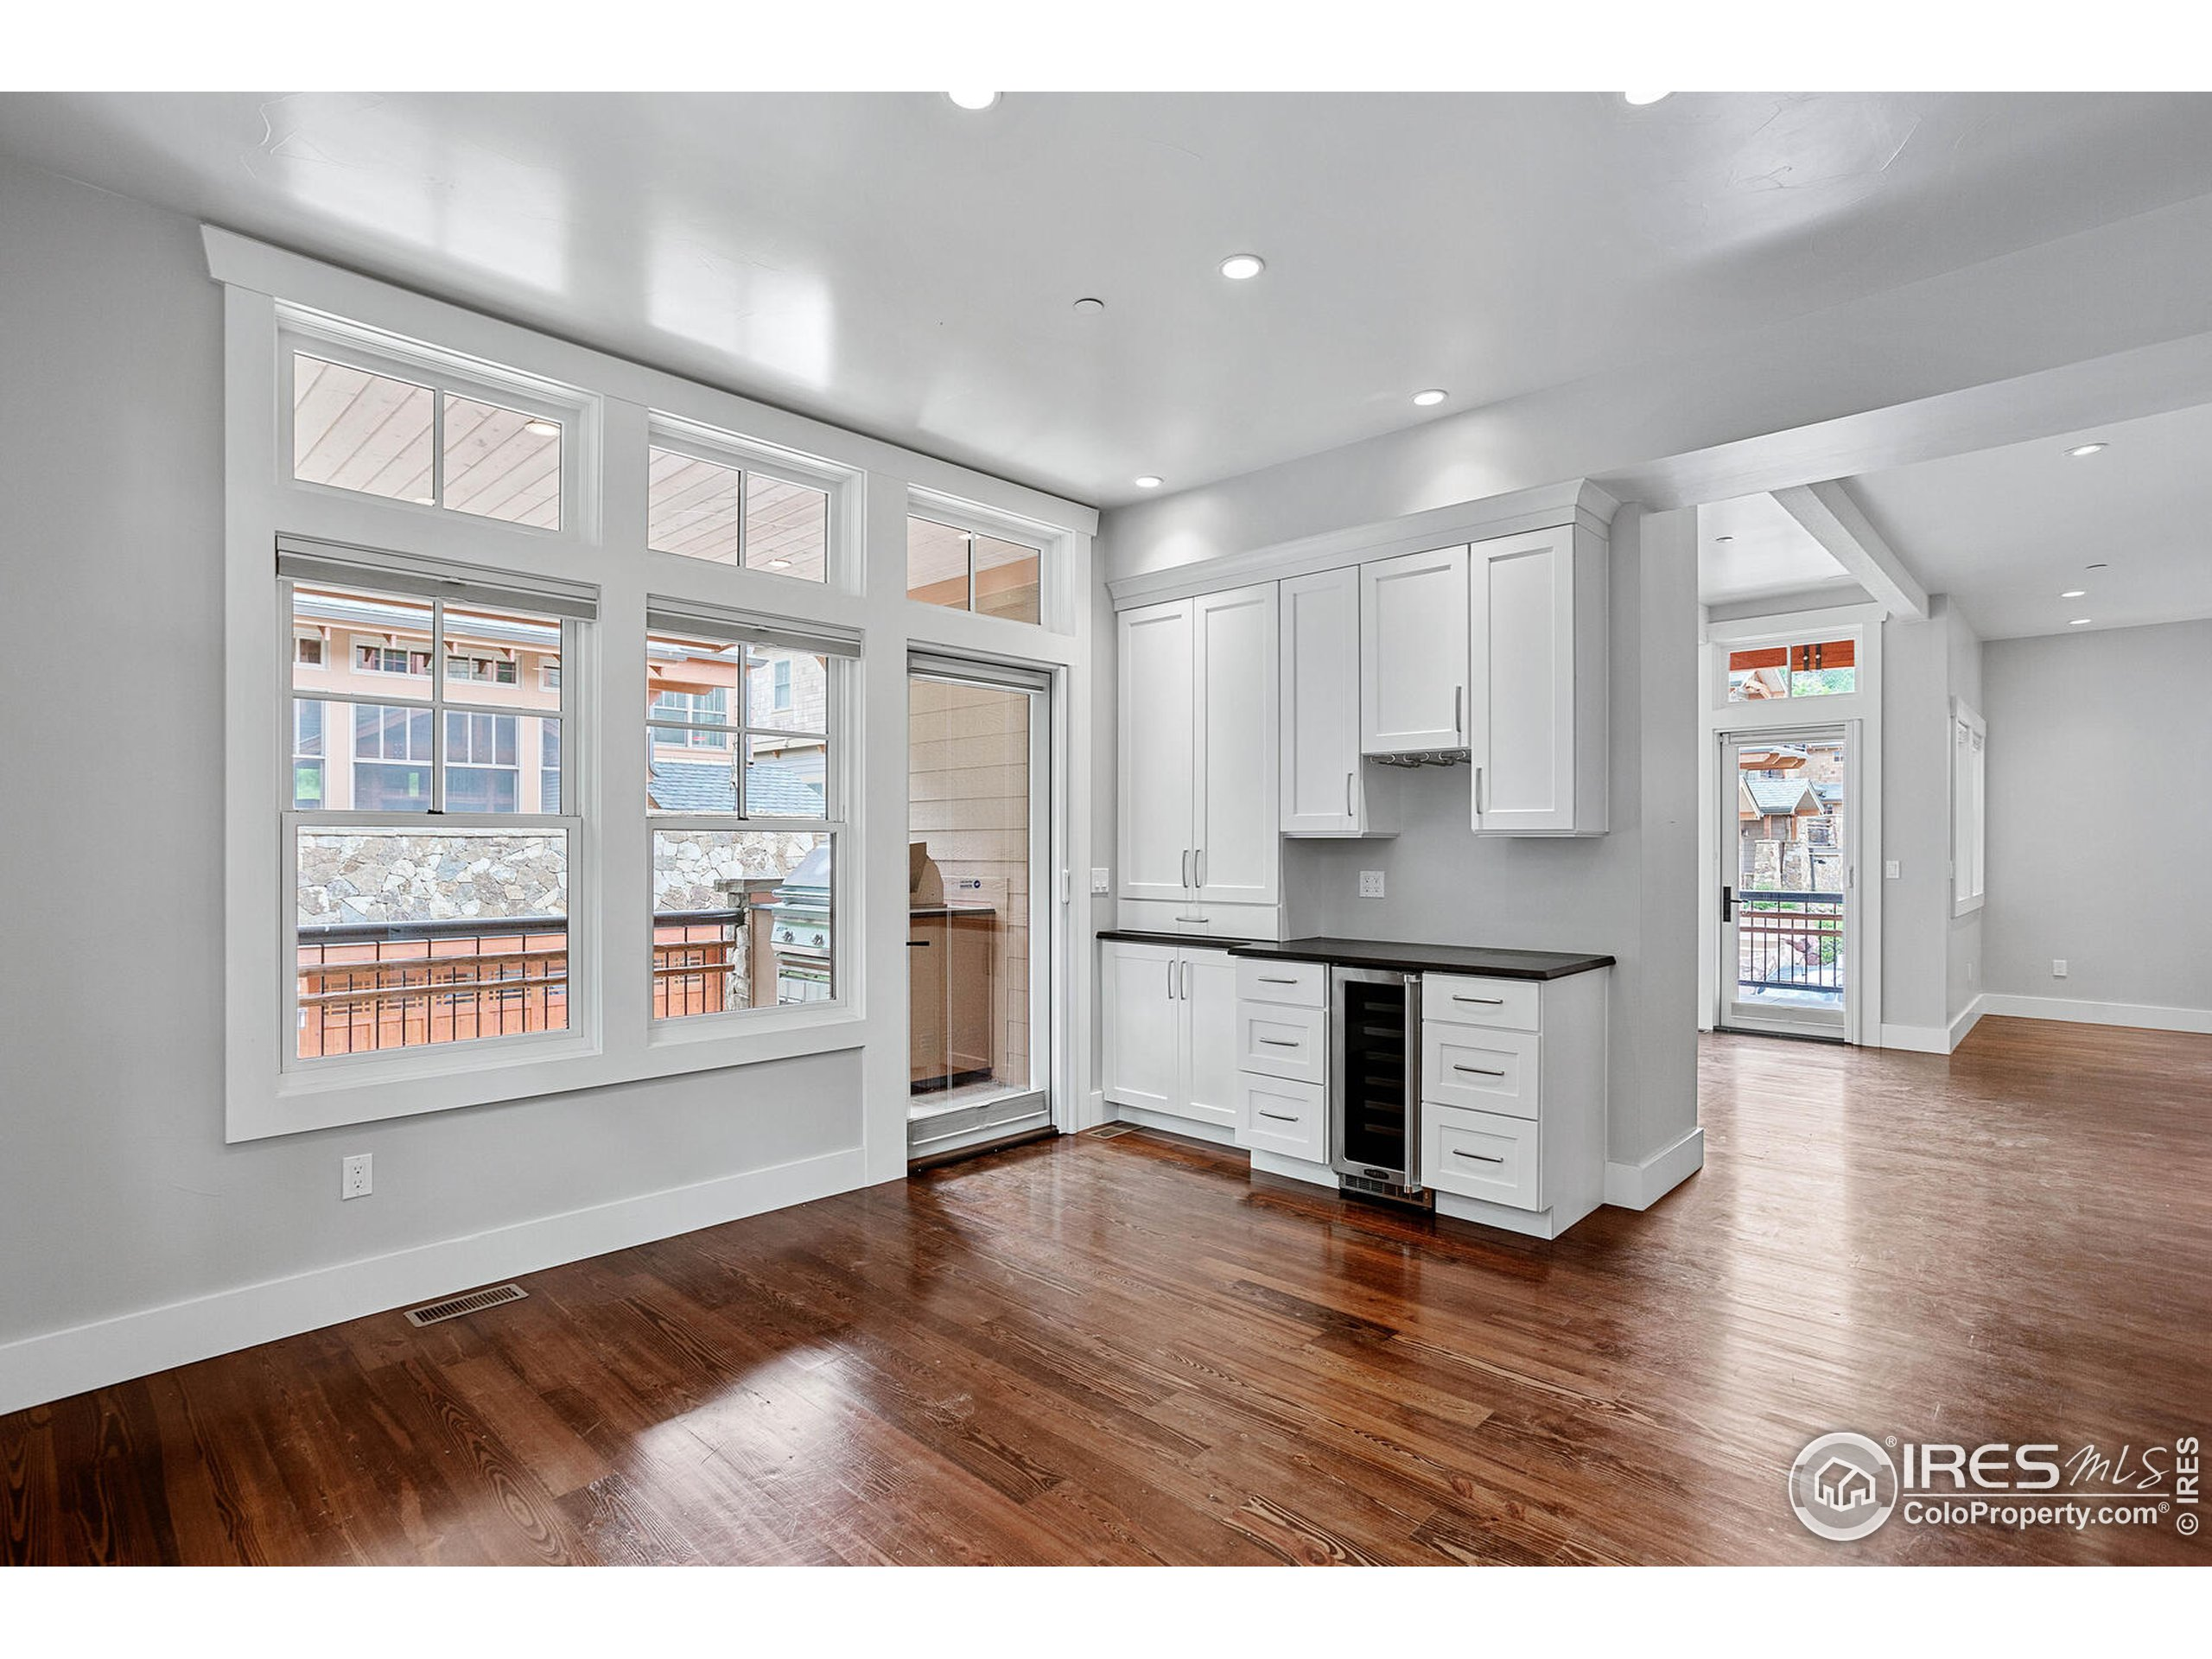 Tall Ceilings and Large Windows Really Open the Space Up!